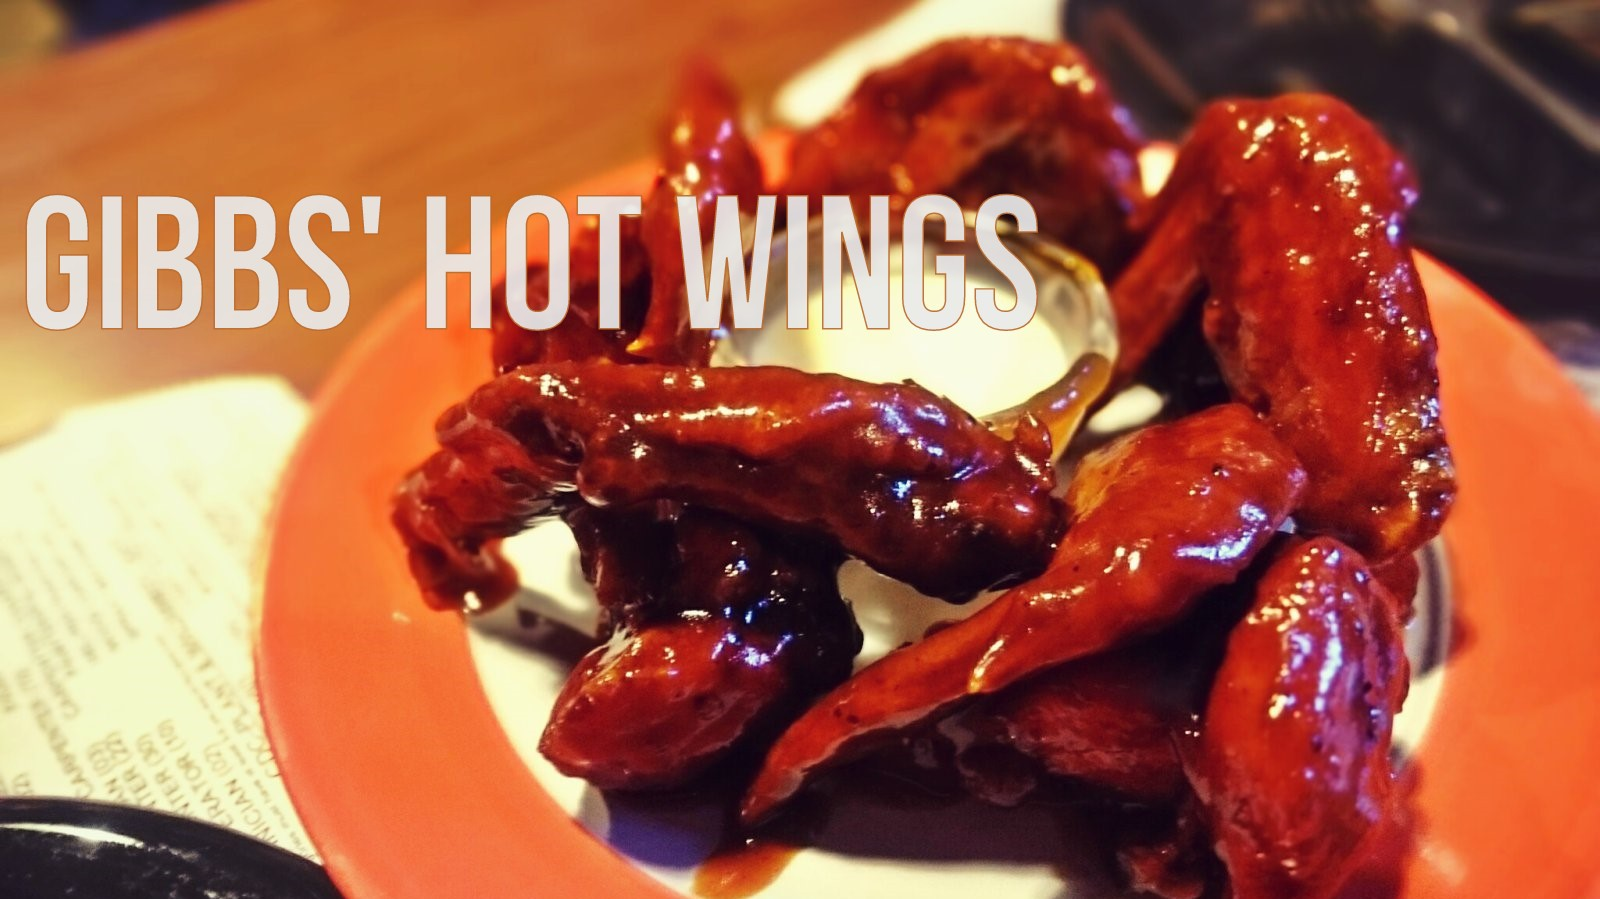 Gibbs' Hot Wings: A Mouthwatering Treat